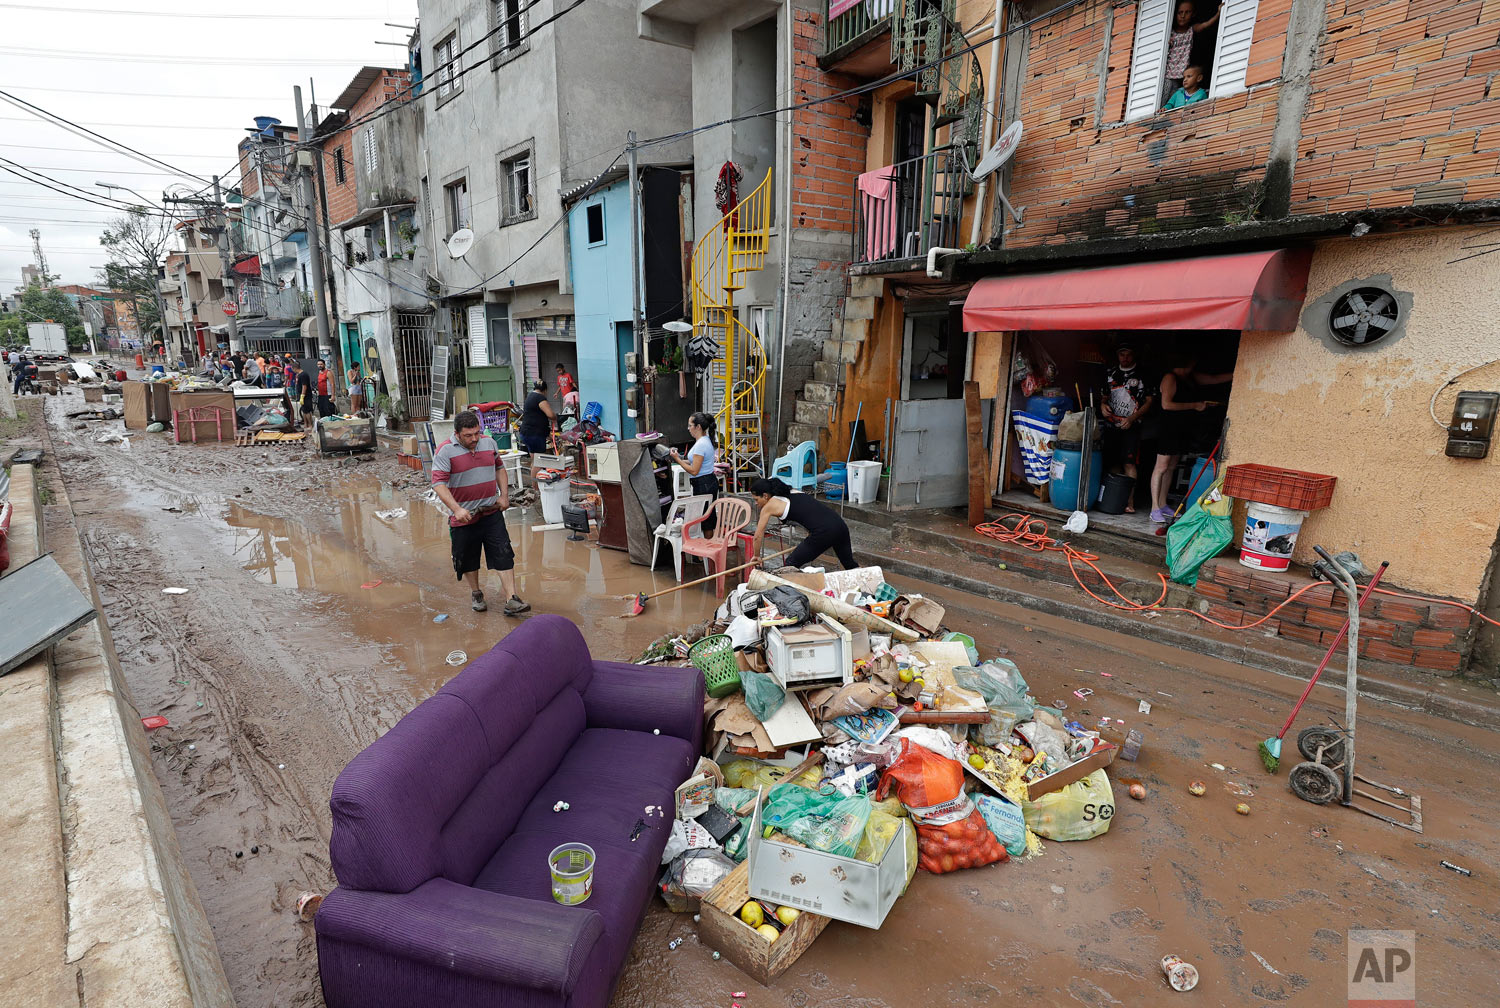 In this March 11, 2019 photo, damaged belongings, spoiled food and soaked furniture are piled up in the street to be taken away as trash after flooding in Sao Paulo, Brazil. (AP Photo/Andre Penner)